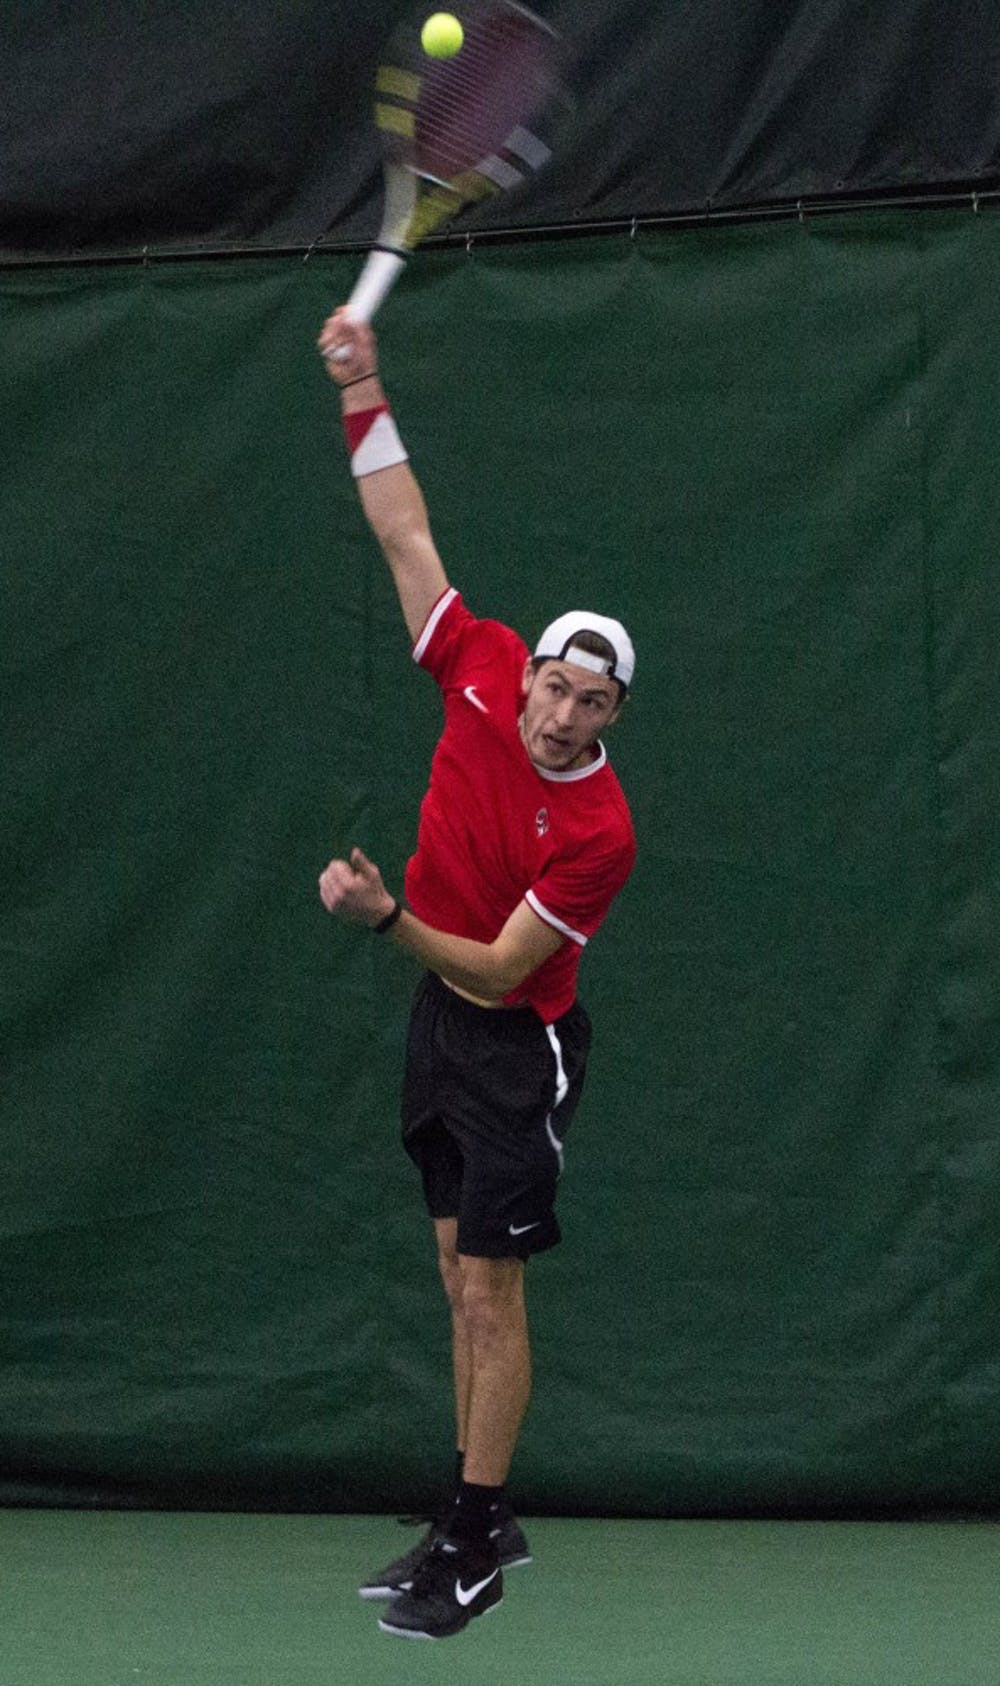 Ball State tennis players Conner Andersen and Nemanja Guzina play against Eastern Illinois players Grant and Trent Reiman in the match on Jan. 22 at Muncie's Northwest YMCA. The Cardinals are playing in the Purdue Invitation Sept 15. Grace Ramey, DN File